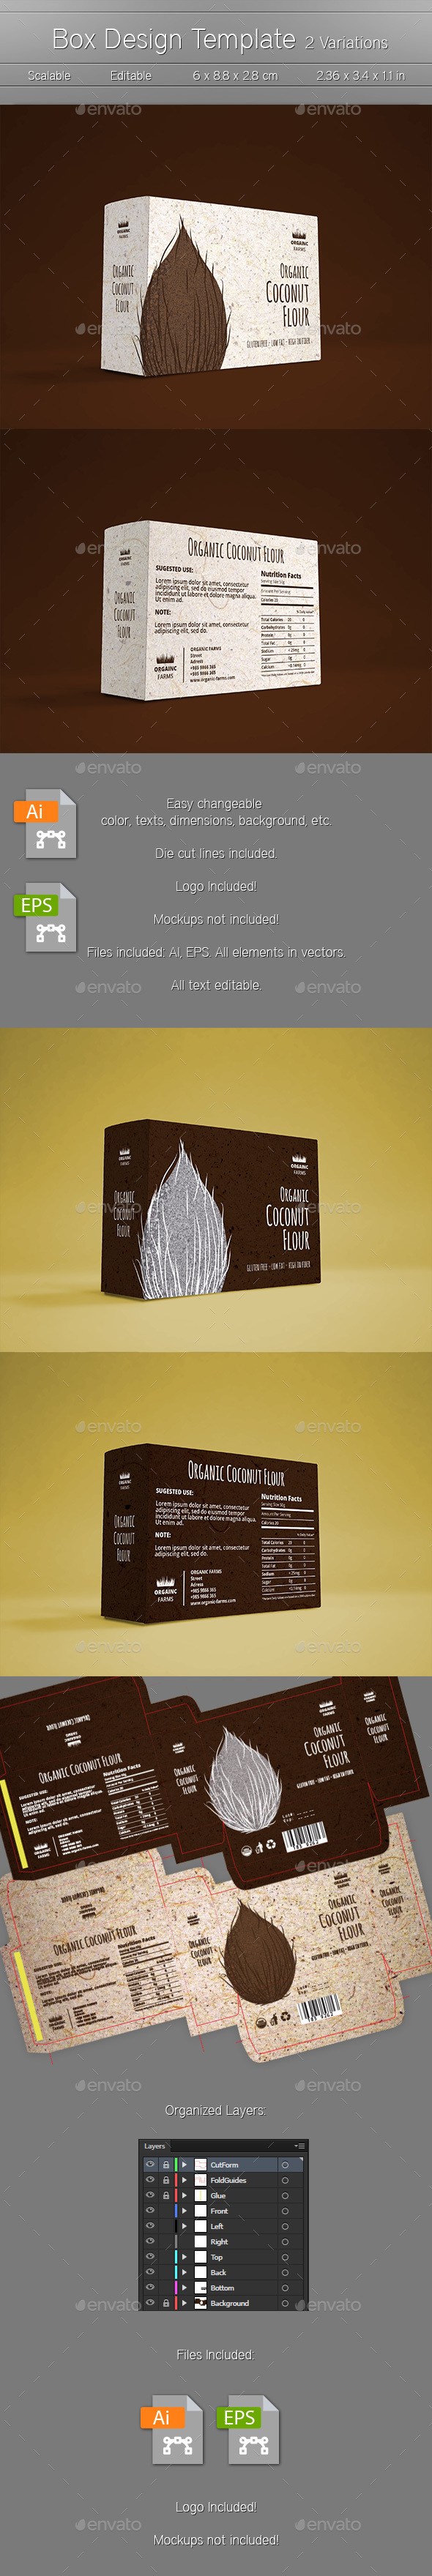 Box Design Template - 2 Variations - - Packaging Print Templates